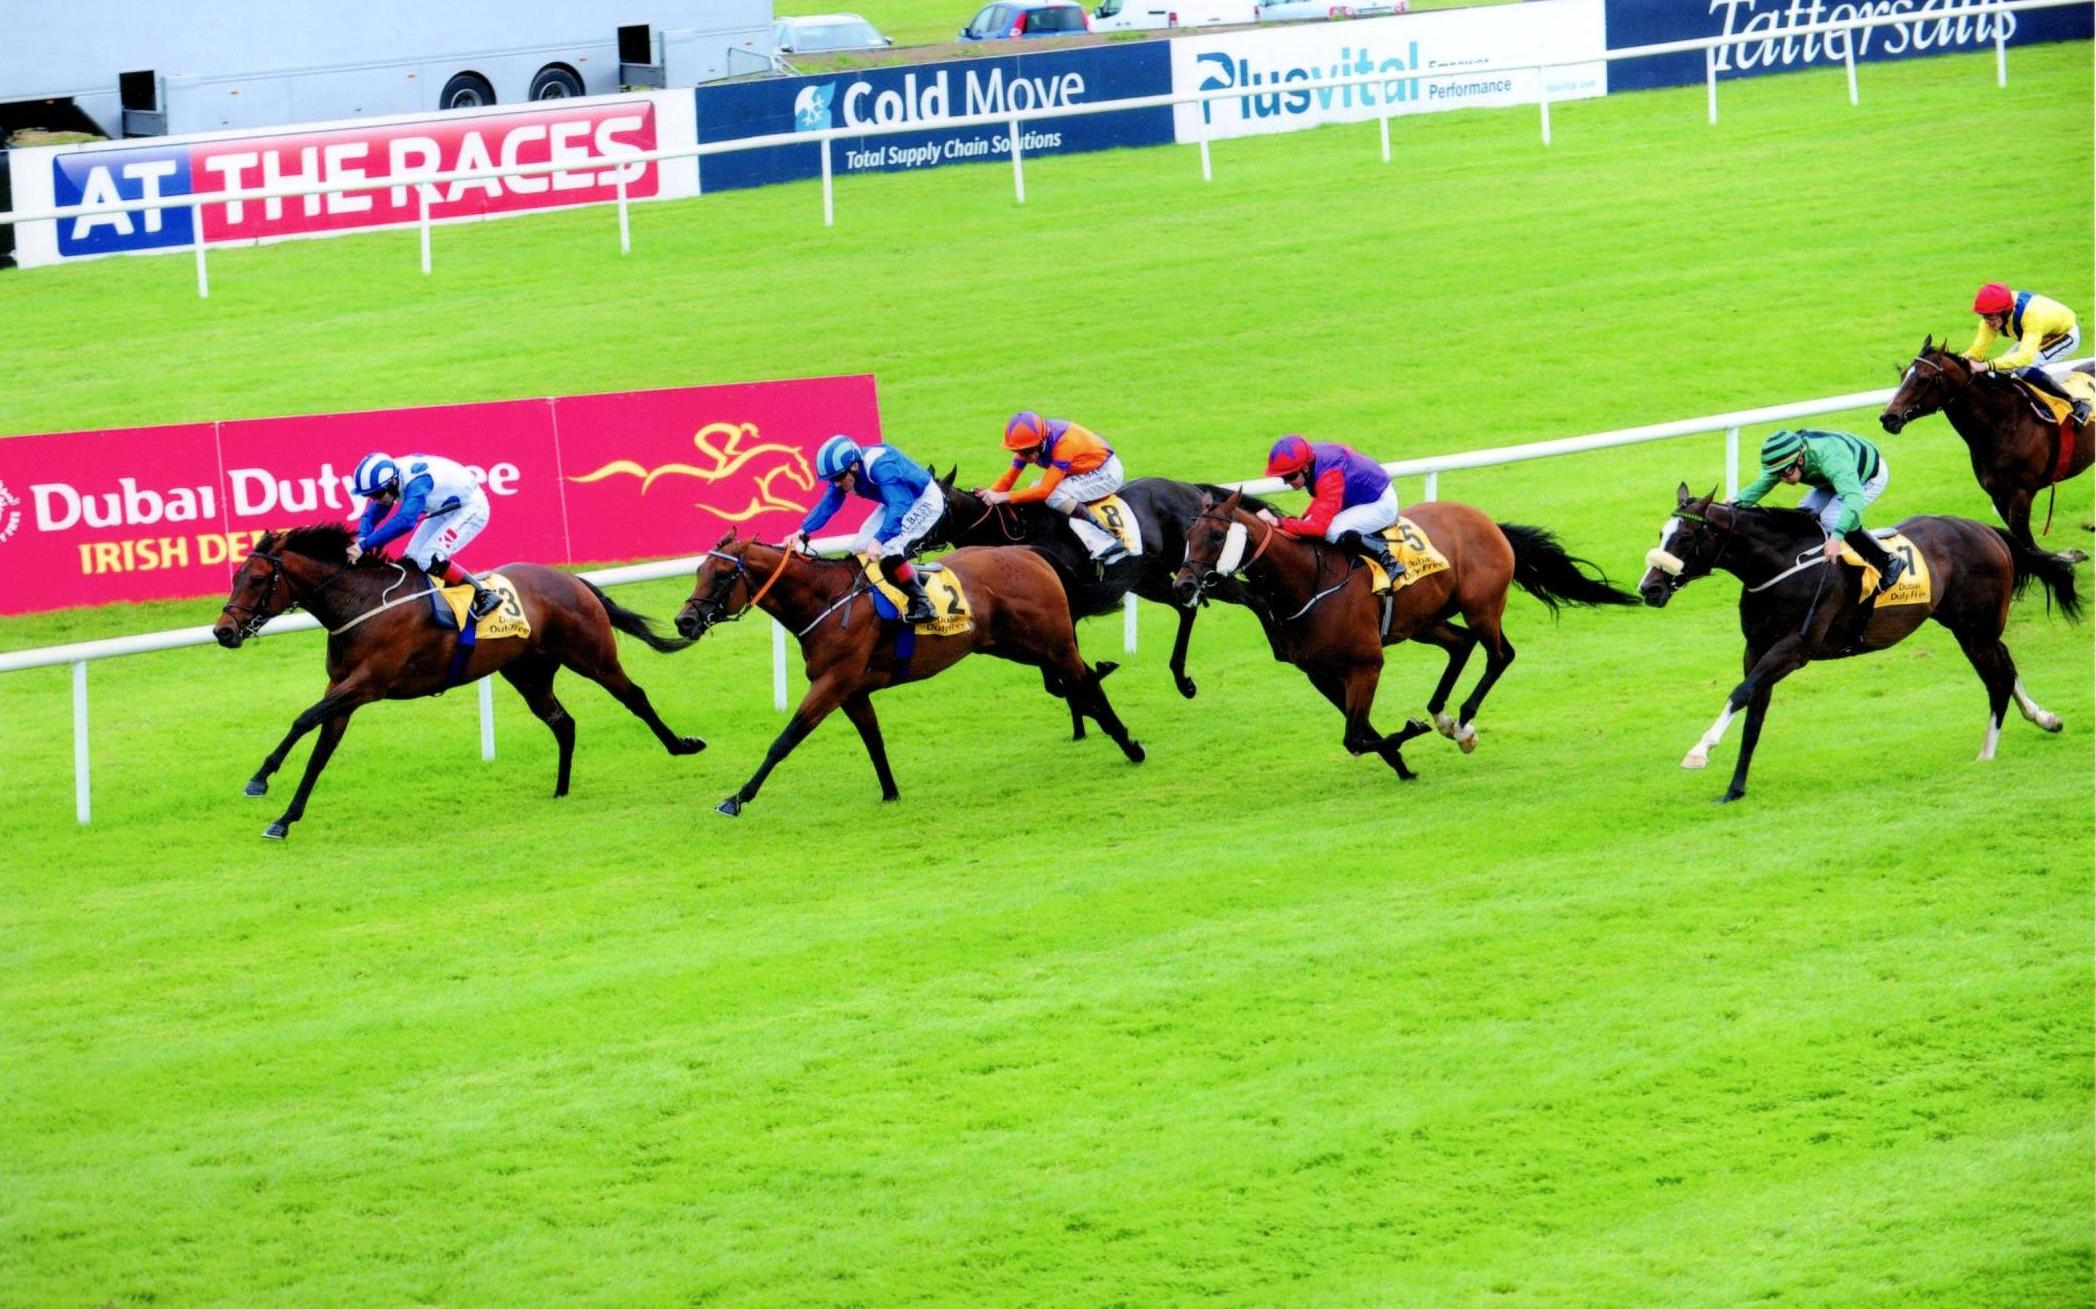 TONY THE GENT winning at The Curragh on Derby Day 1st July 2017